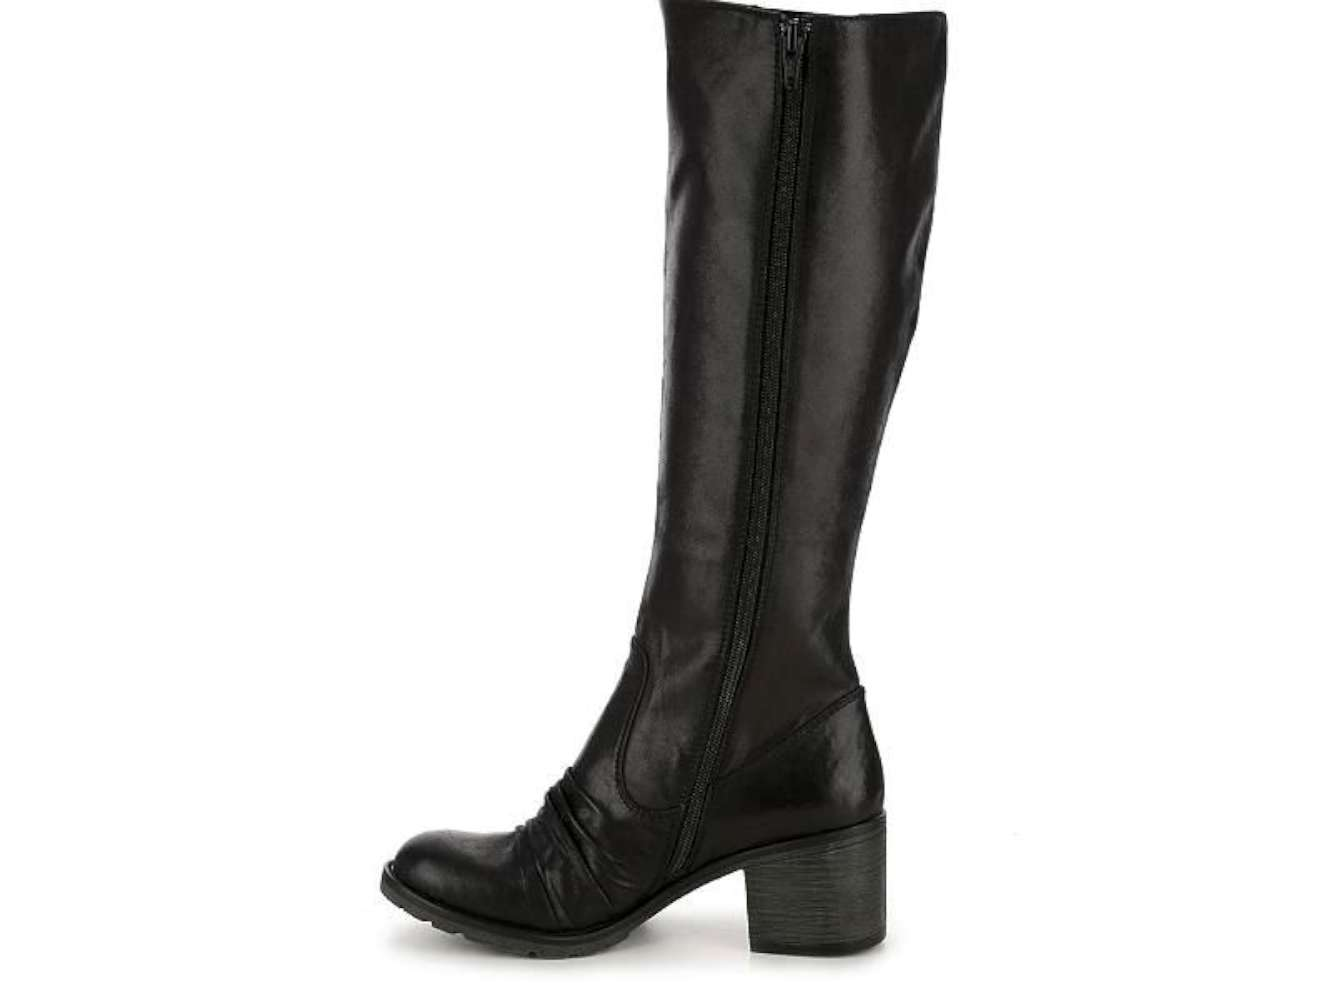 Bare Traps Damenschuhe Damenschuhe Damenschuhe DALLIA Closed Toe Mid Calf Riding Stiefel     92fea8